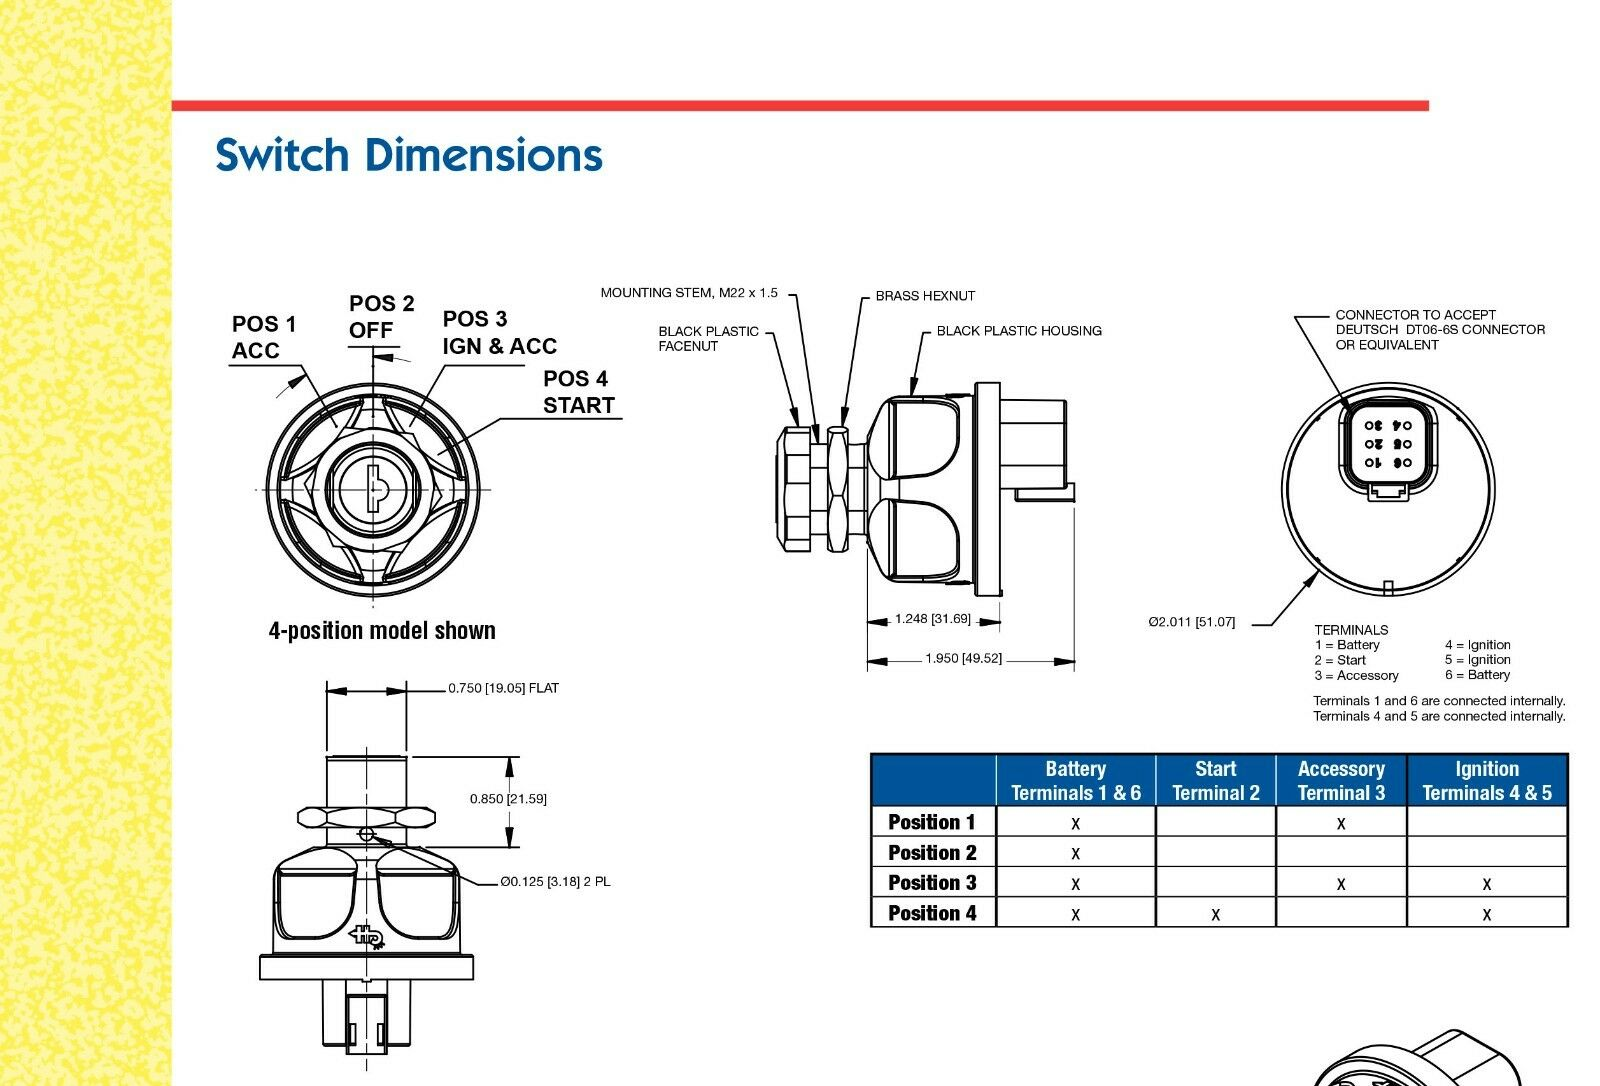 push to choke ignition switch wiring diagram dw 4033  3 terminal ignition switch wiring diagram free diagram  terminal ignition switch wiring diagram